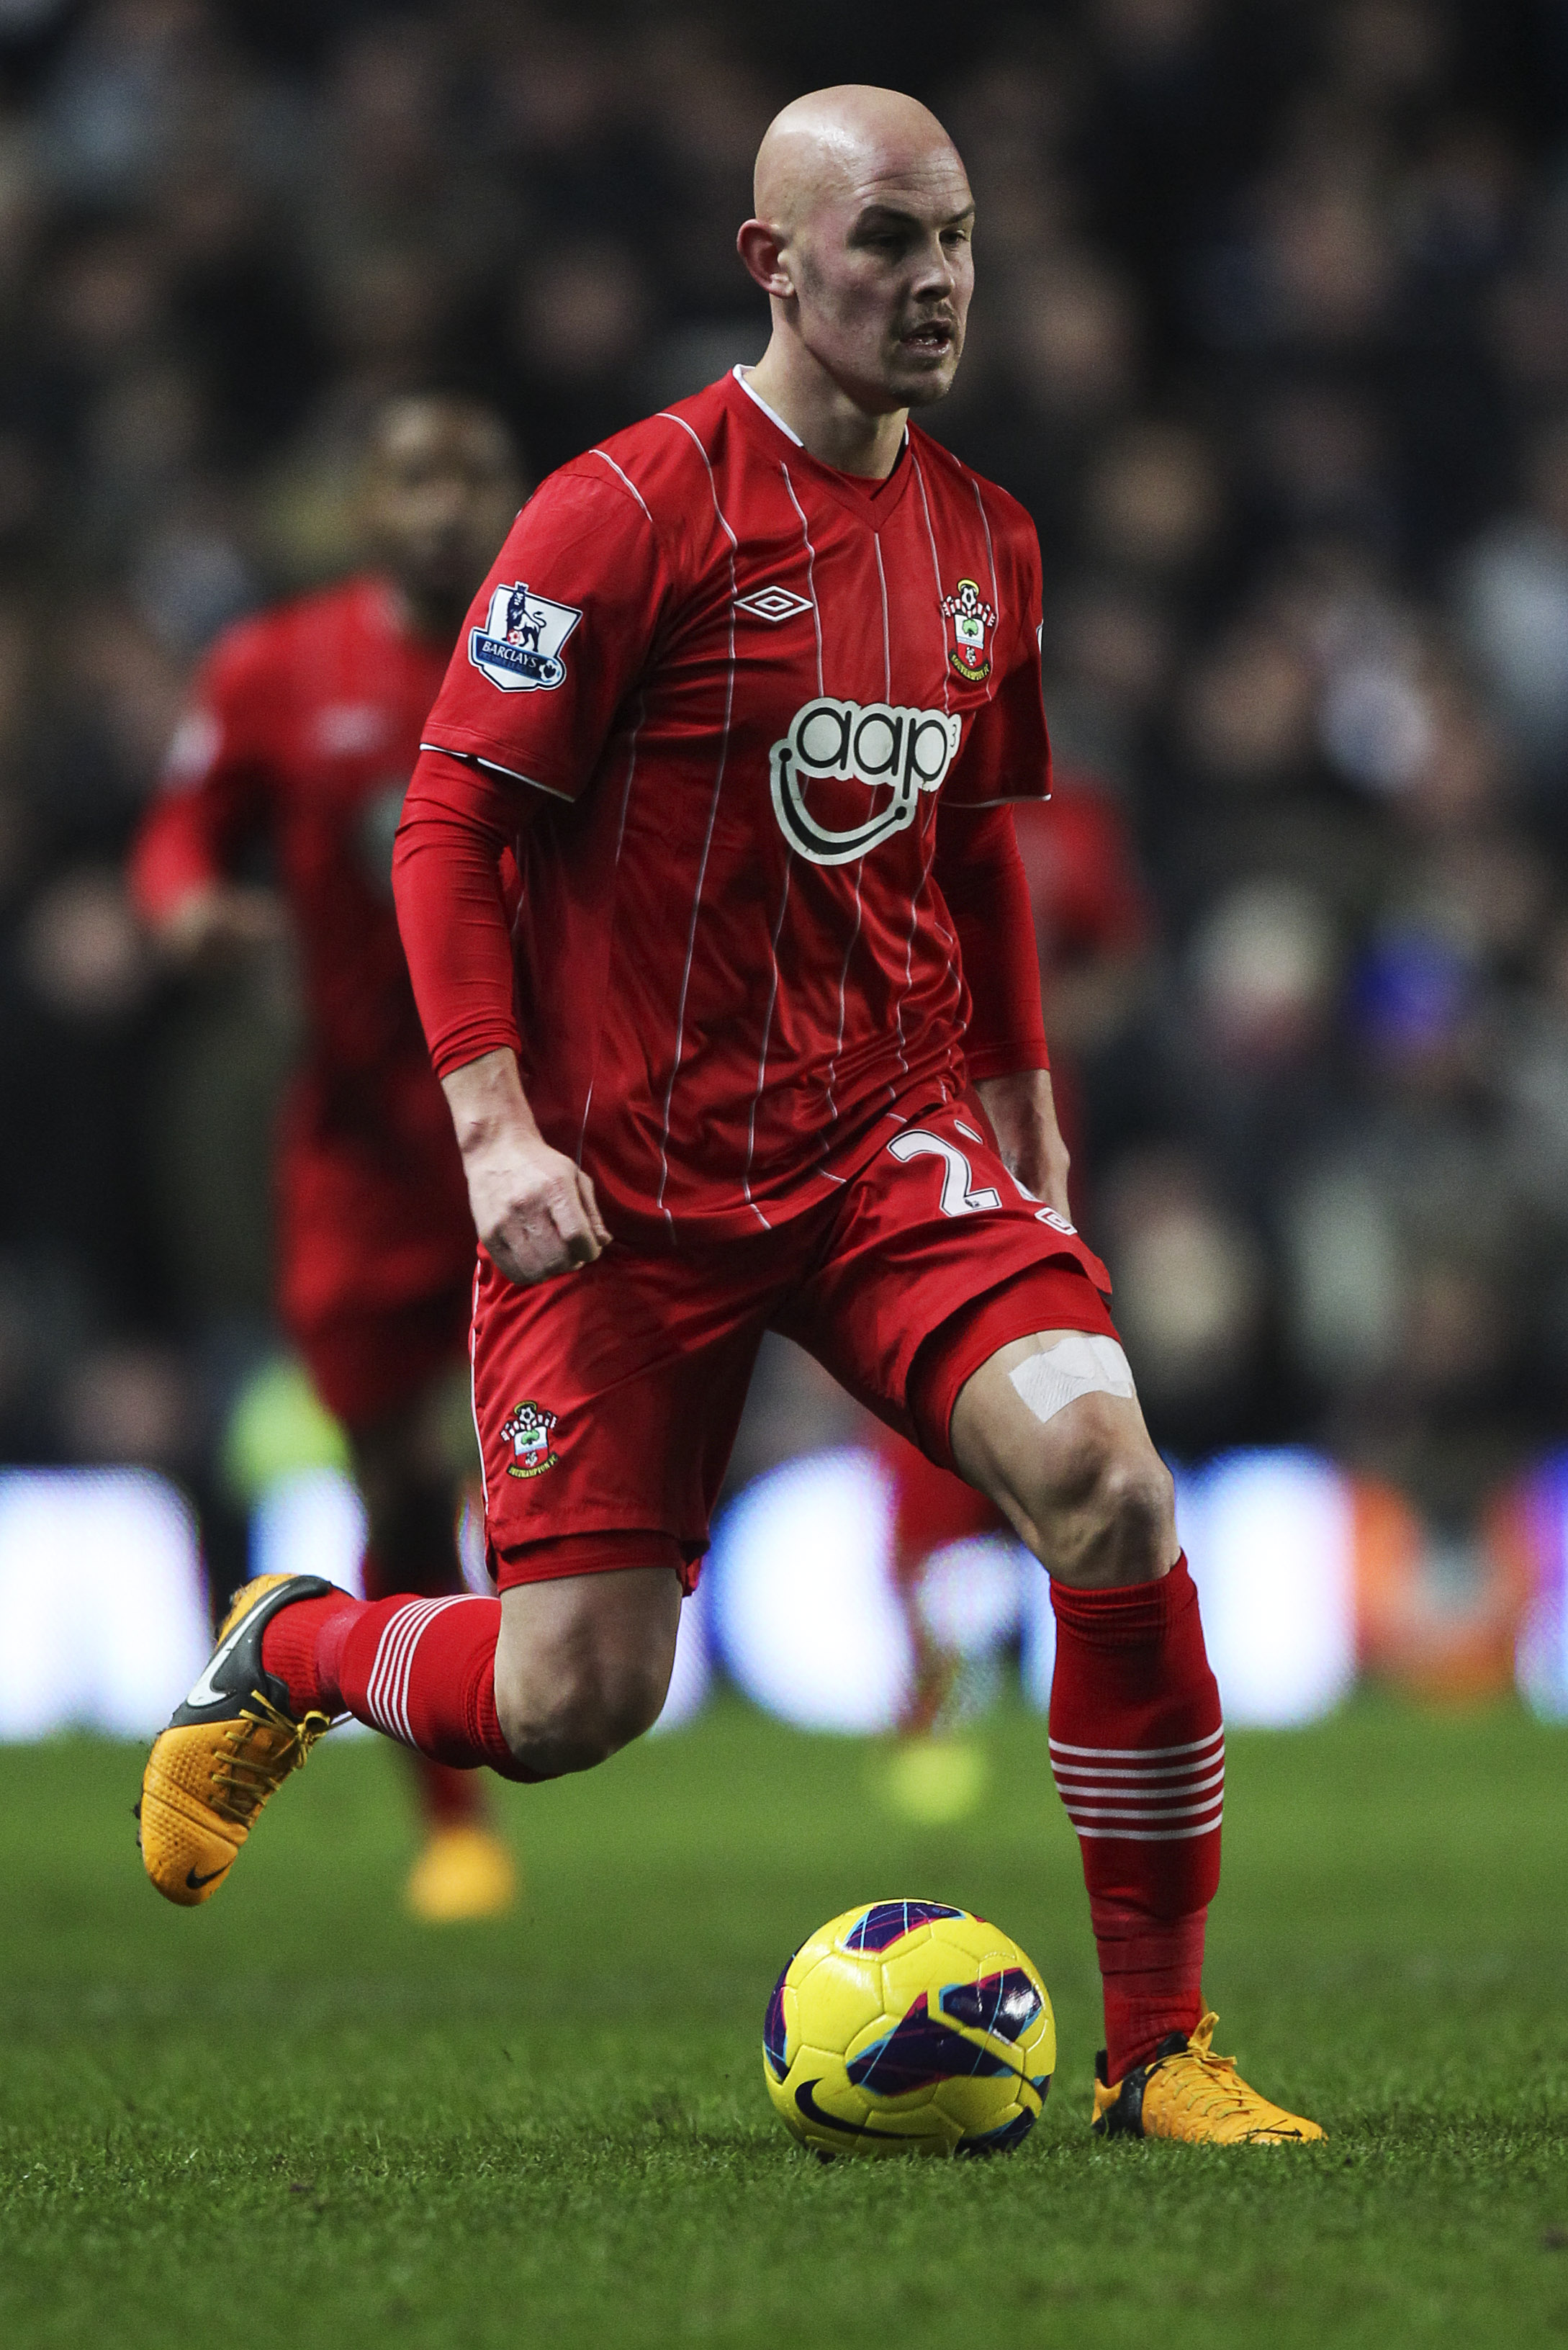 Richard Chaplow playing for Southampton in the Premier League against Chelsea thoughts on Saints manager Mauricio Pochettino and Nigel Adkins.